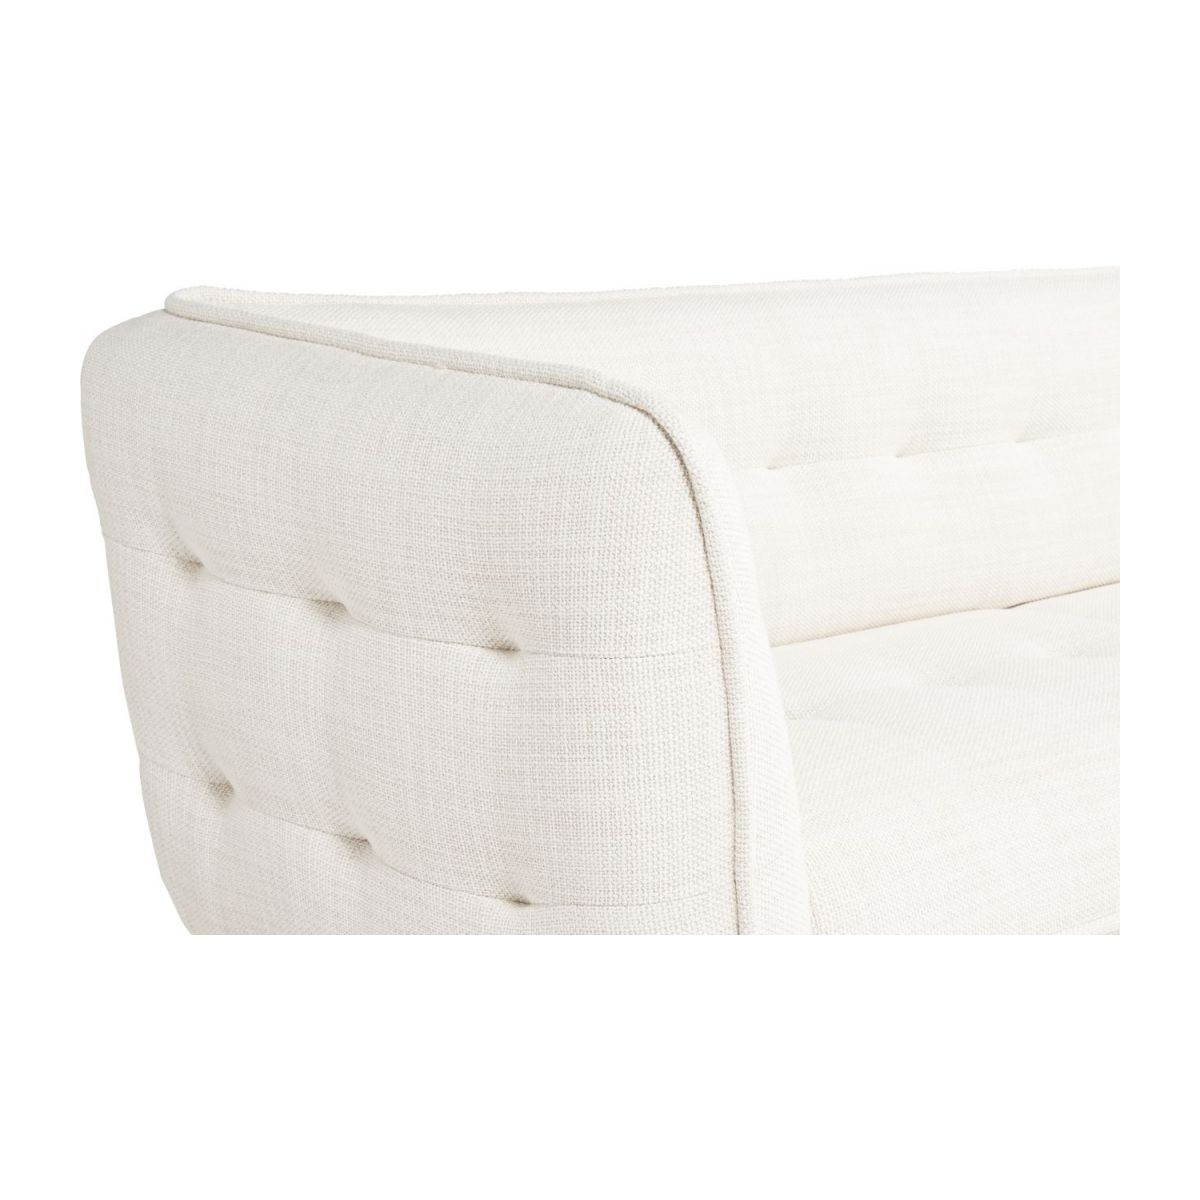 3 seater sofa in Fasoli fabric, snow white and oak legs n°5